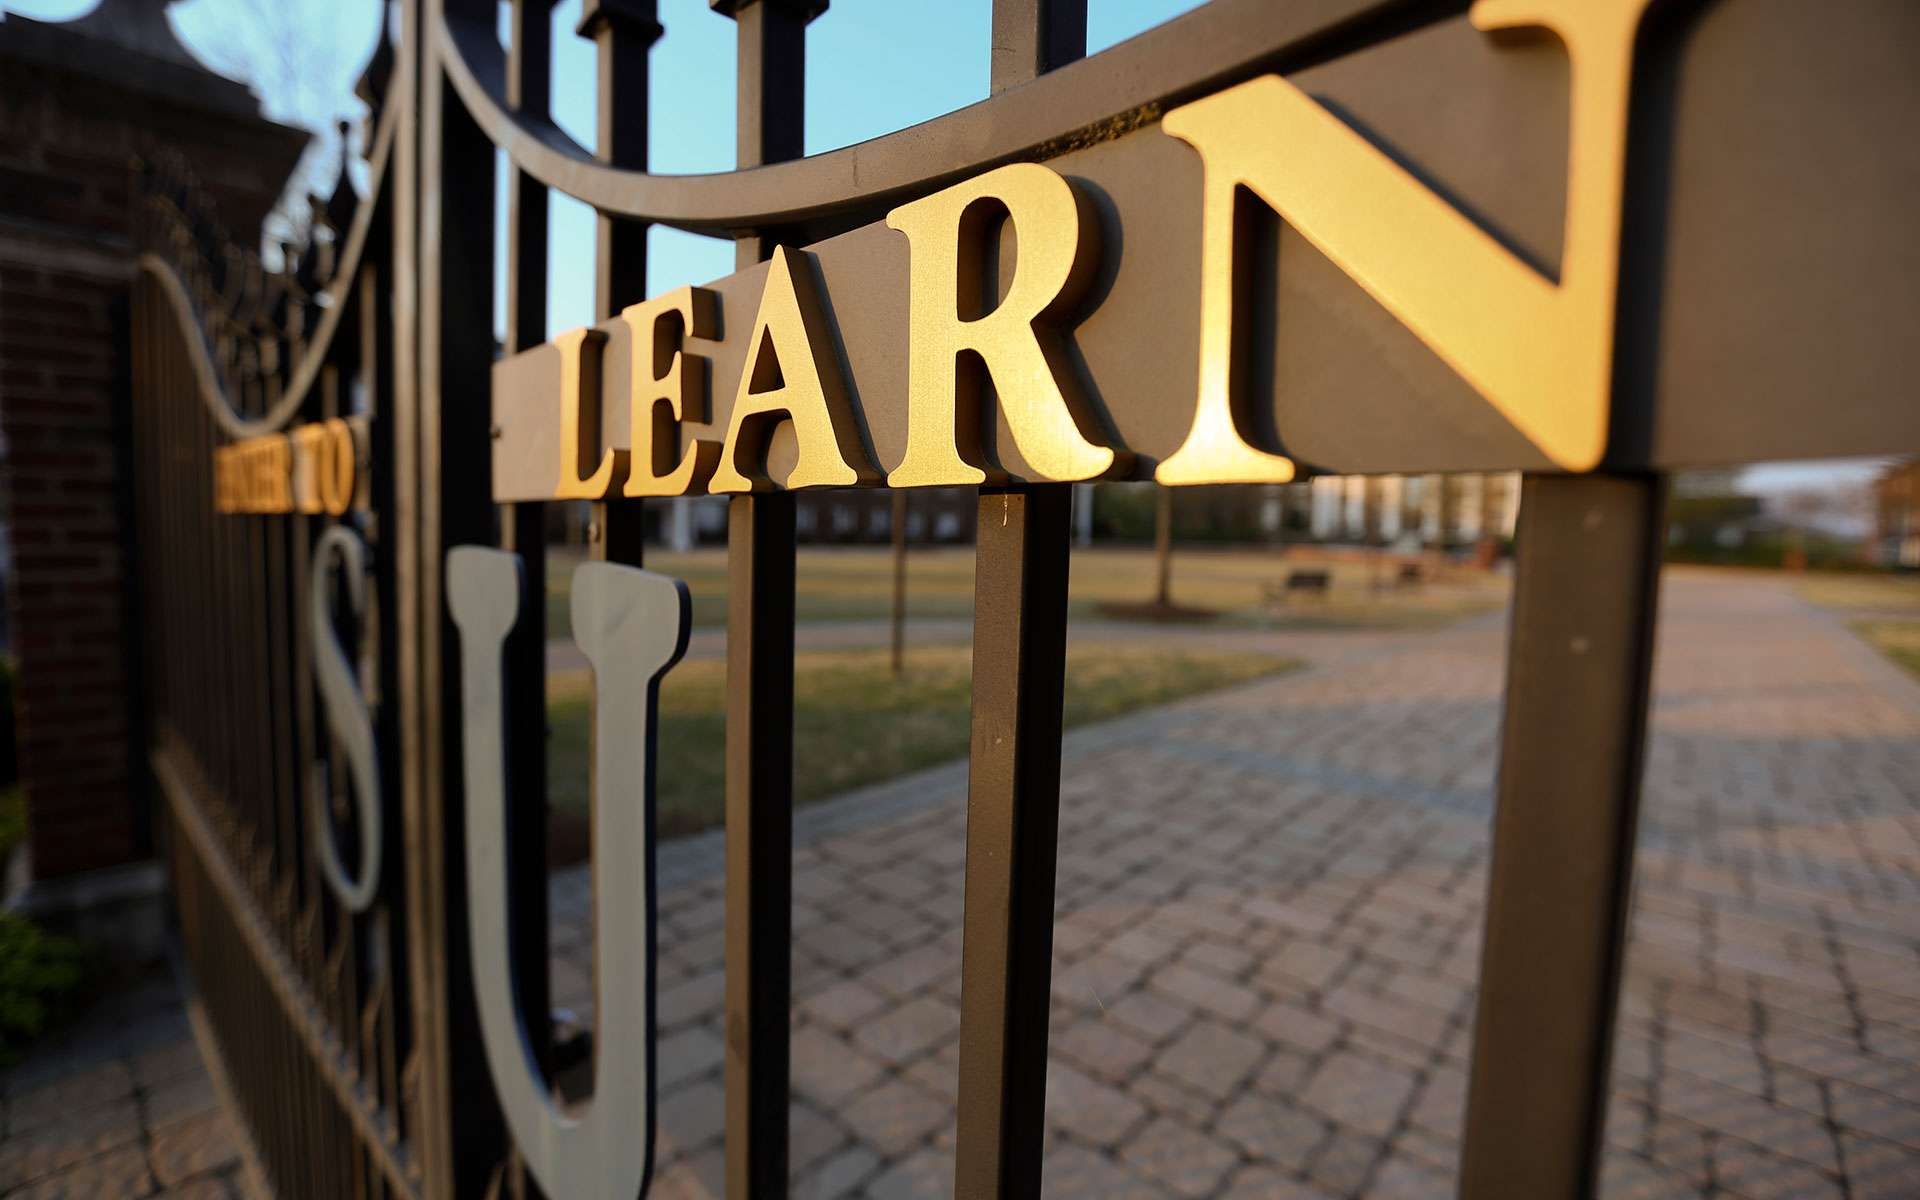 Front gates / enter to learn